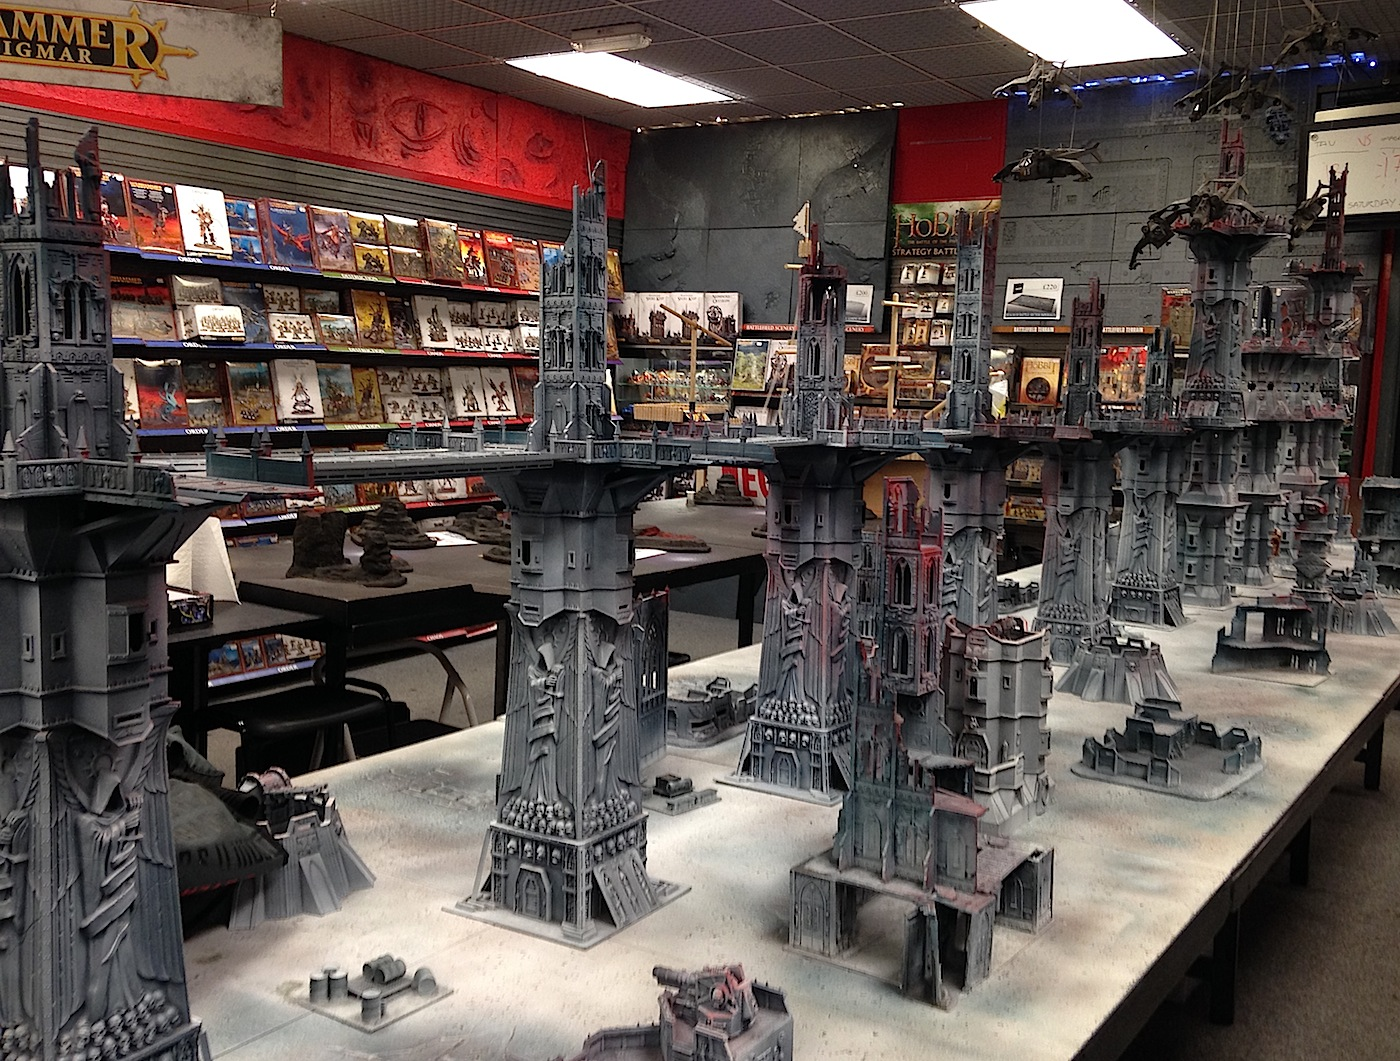 Game nail color workshop - More Than That Check Out The Apocalypse Sized Gaming Table Toward The Back Of The Store As Well